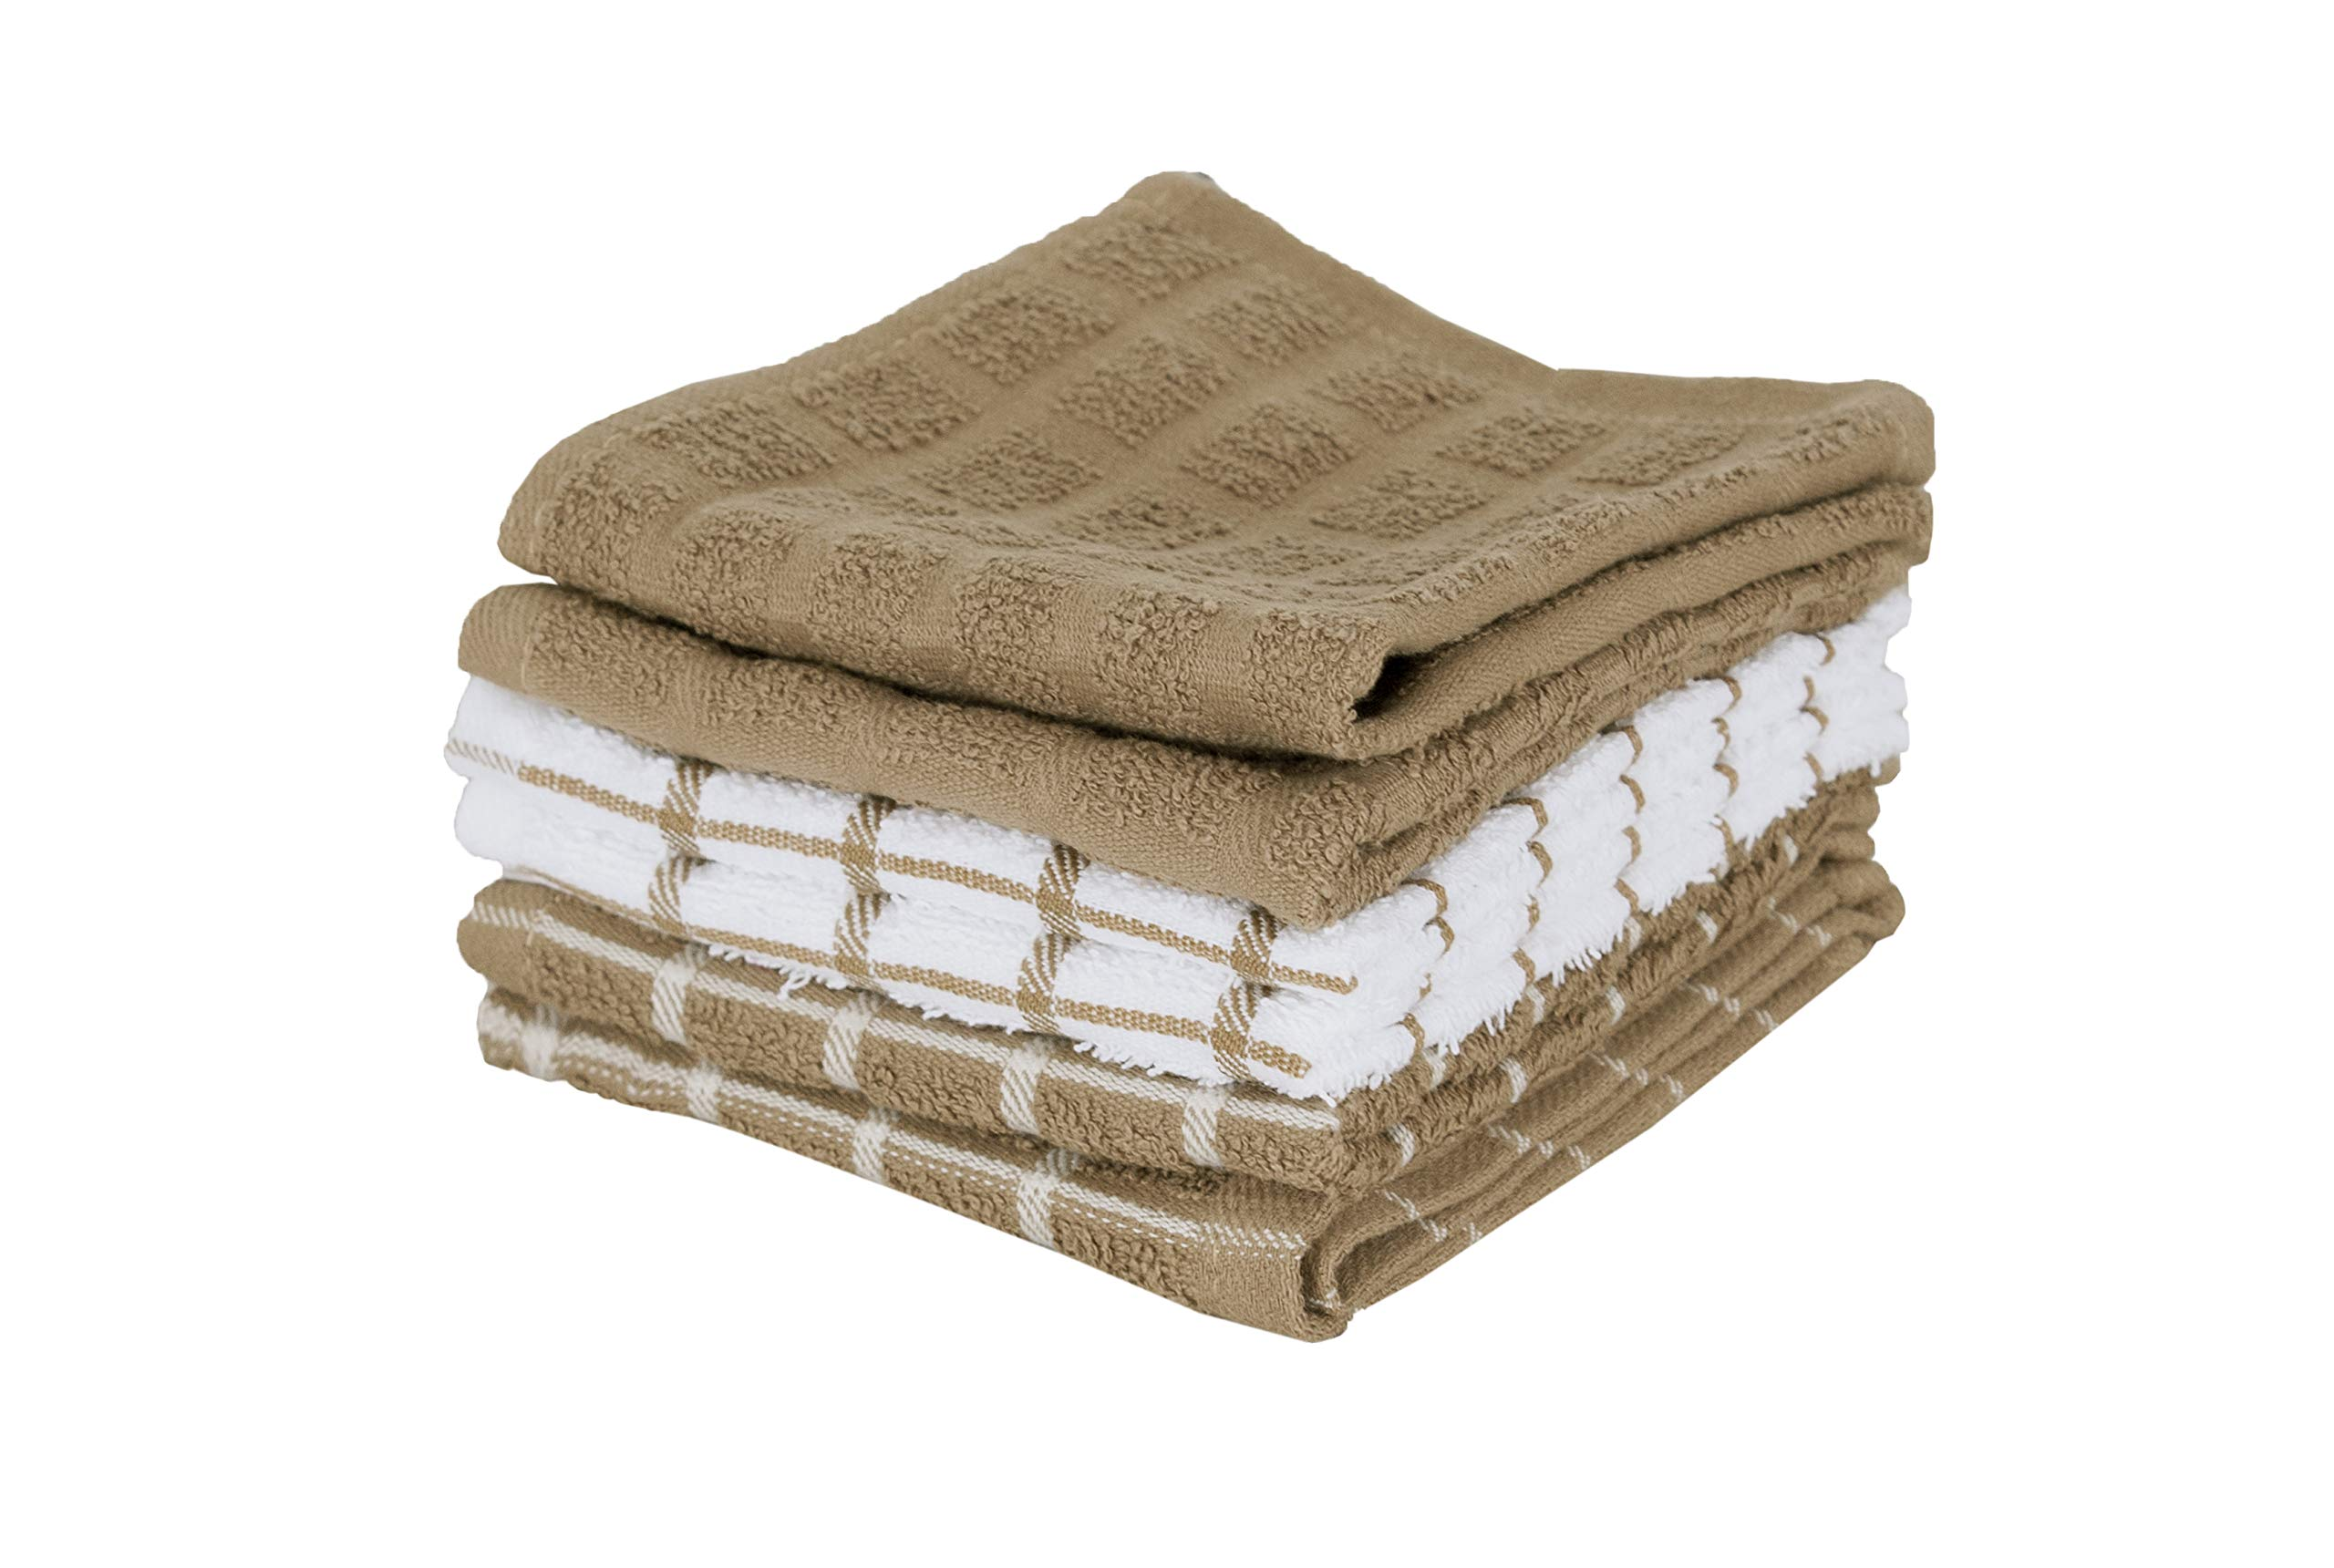 """Ritz 100% Terry Cotton, Highly Absorbent Dish Cloth Set, 12"""" x 12"""", 6-Pack, Mocha Brown"""